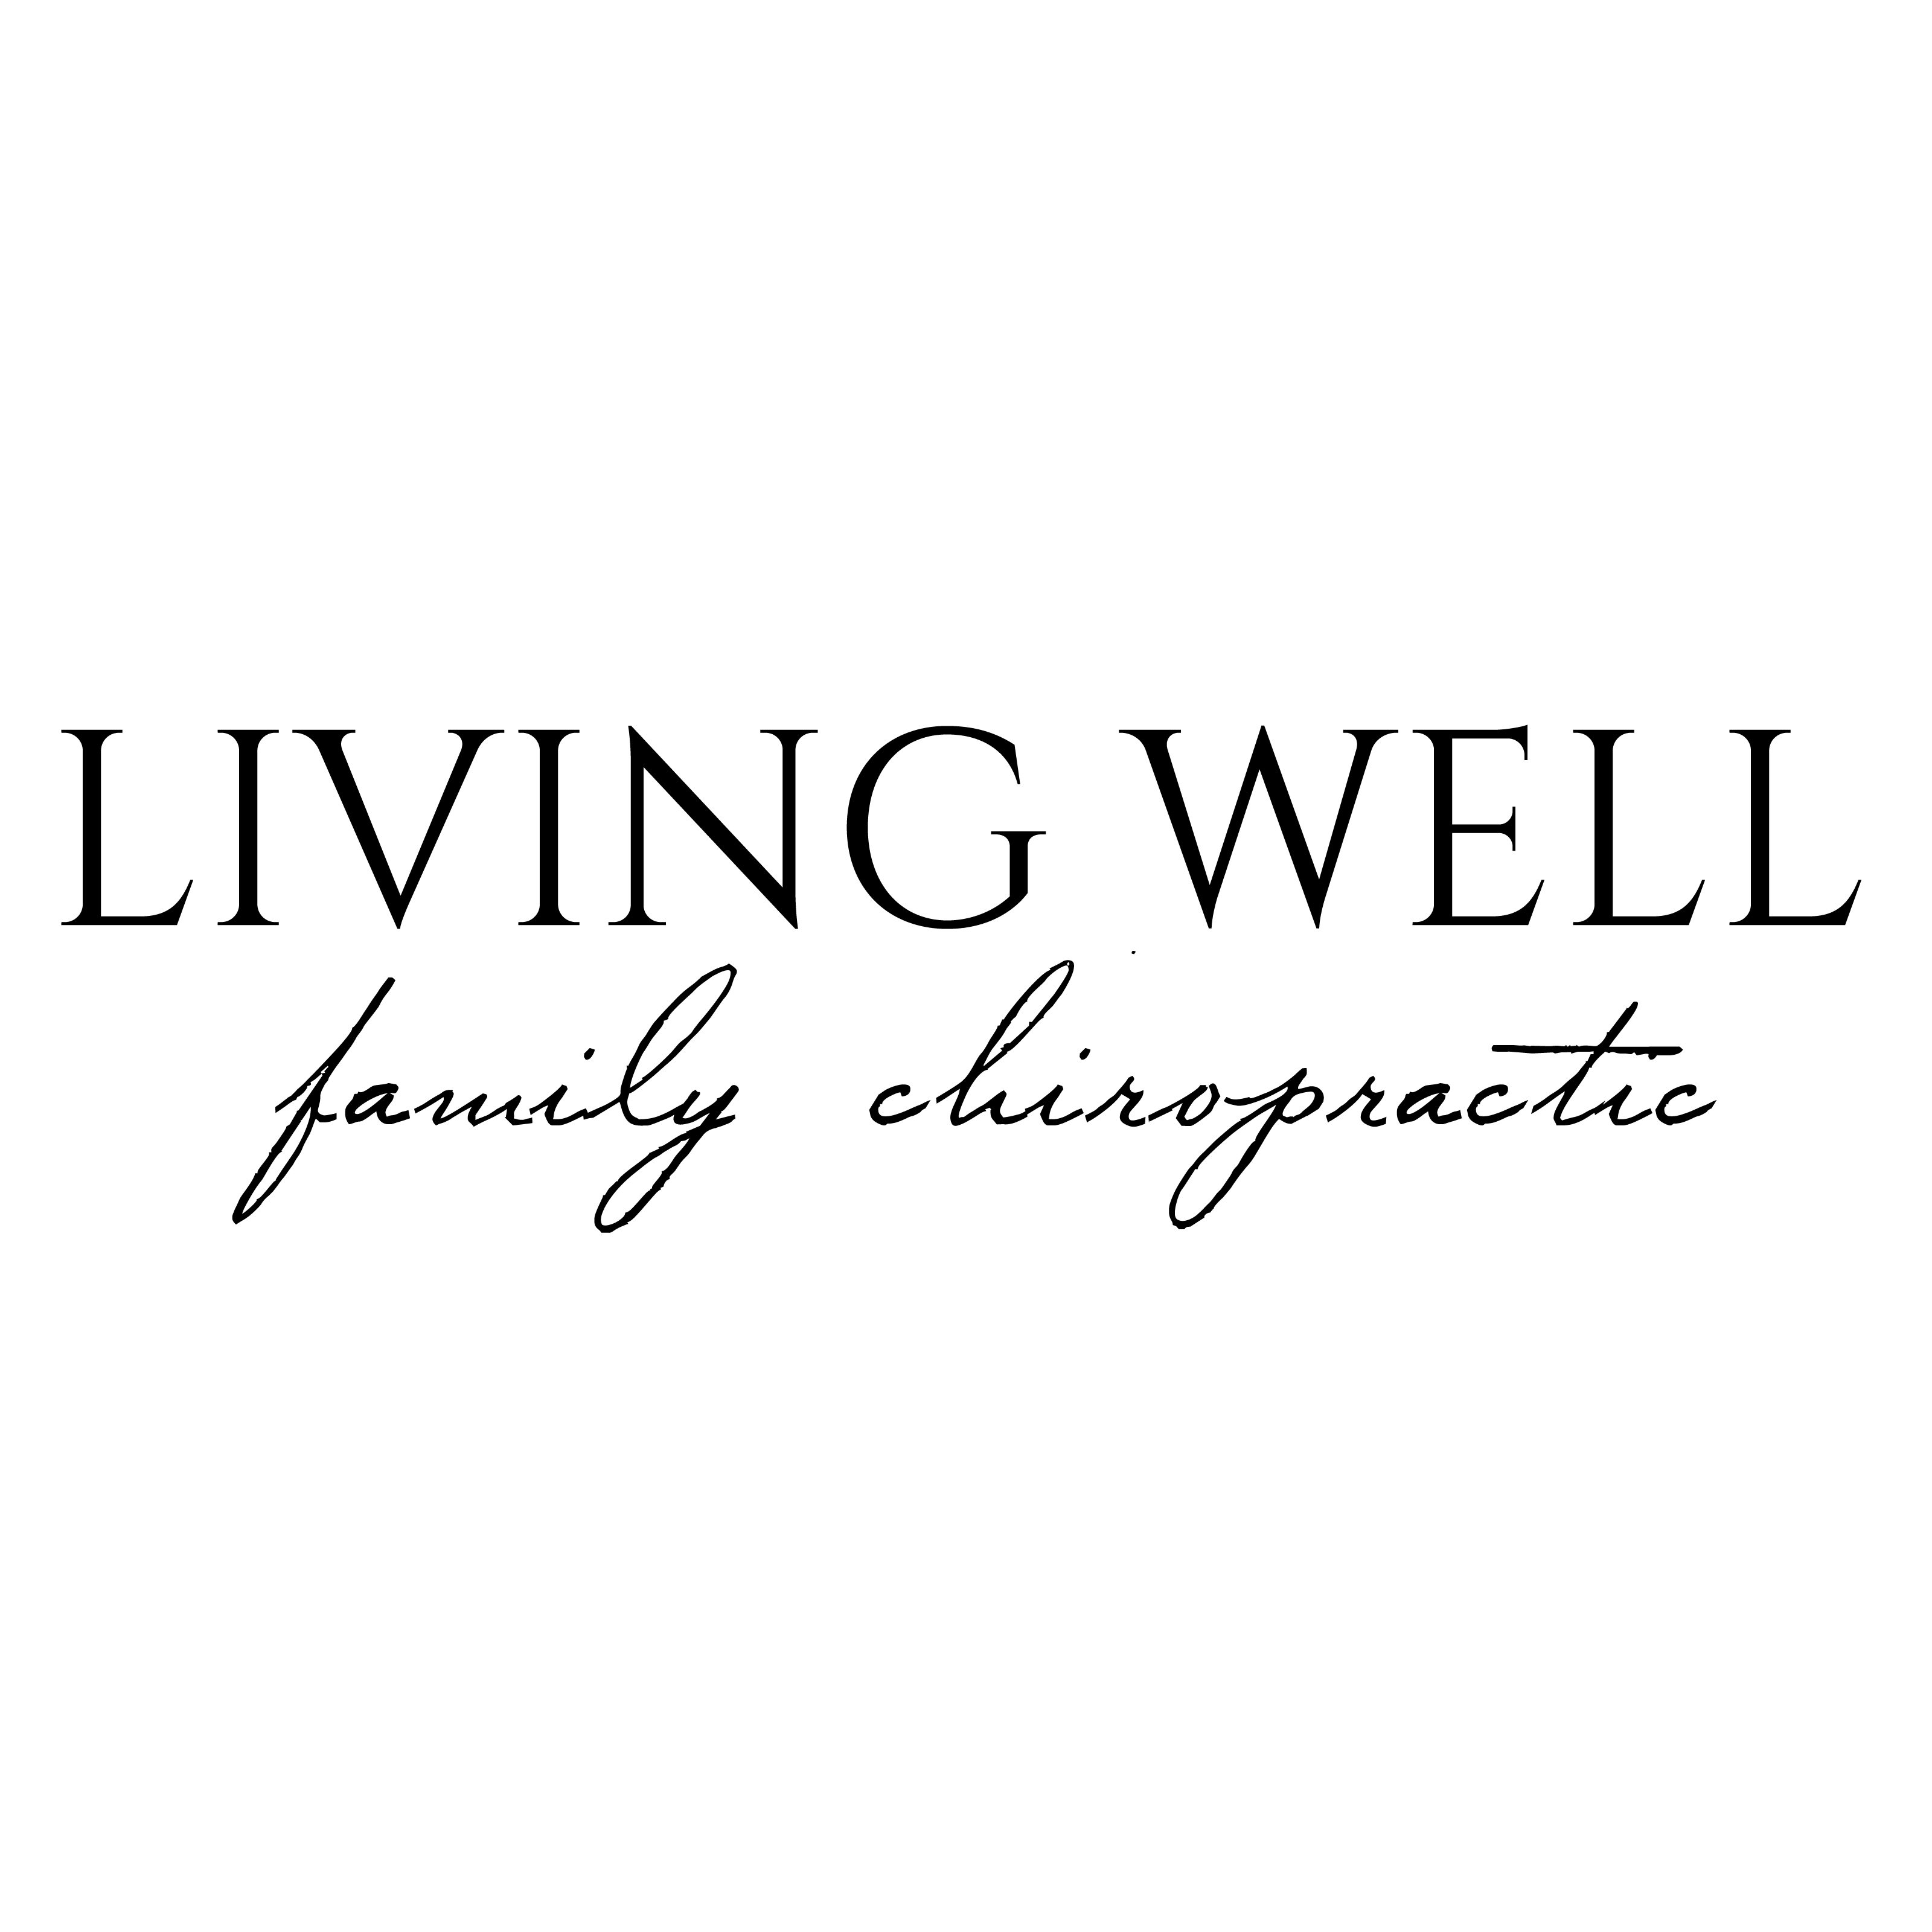 Living Well Family Chiropractic